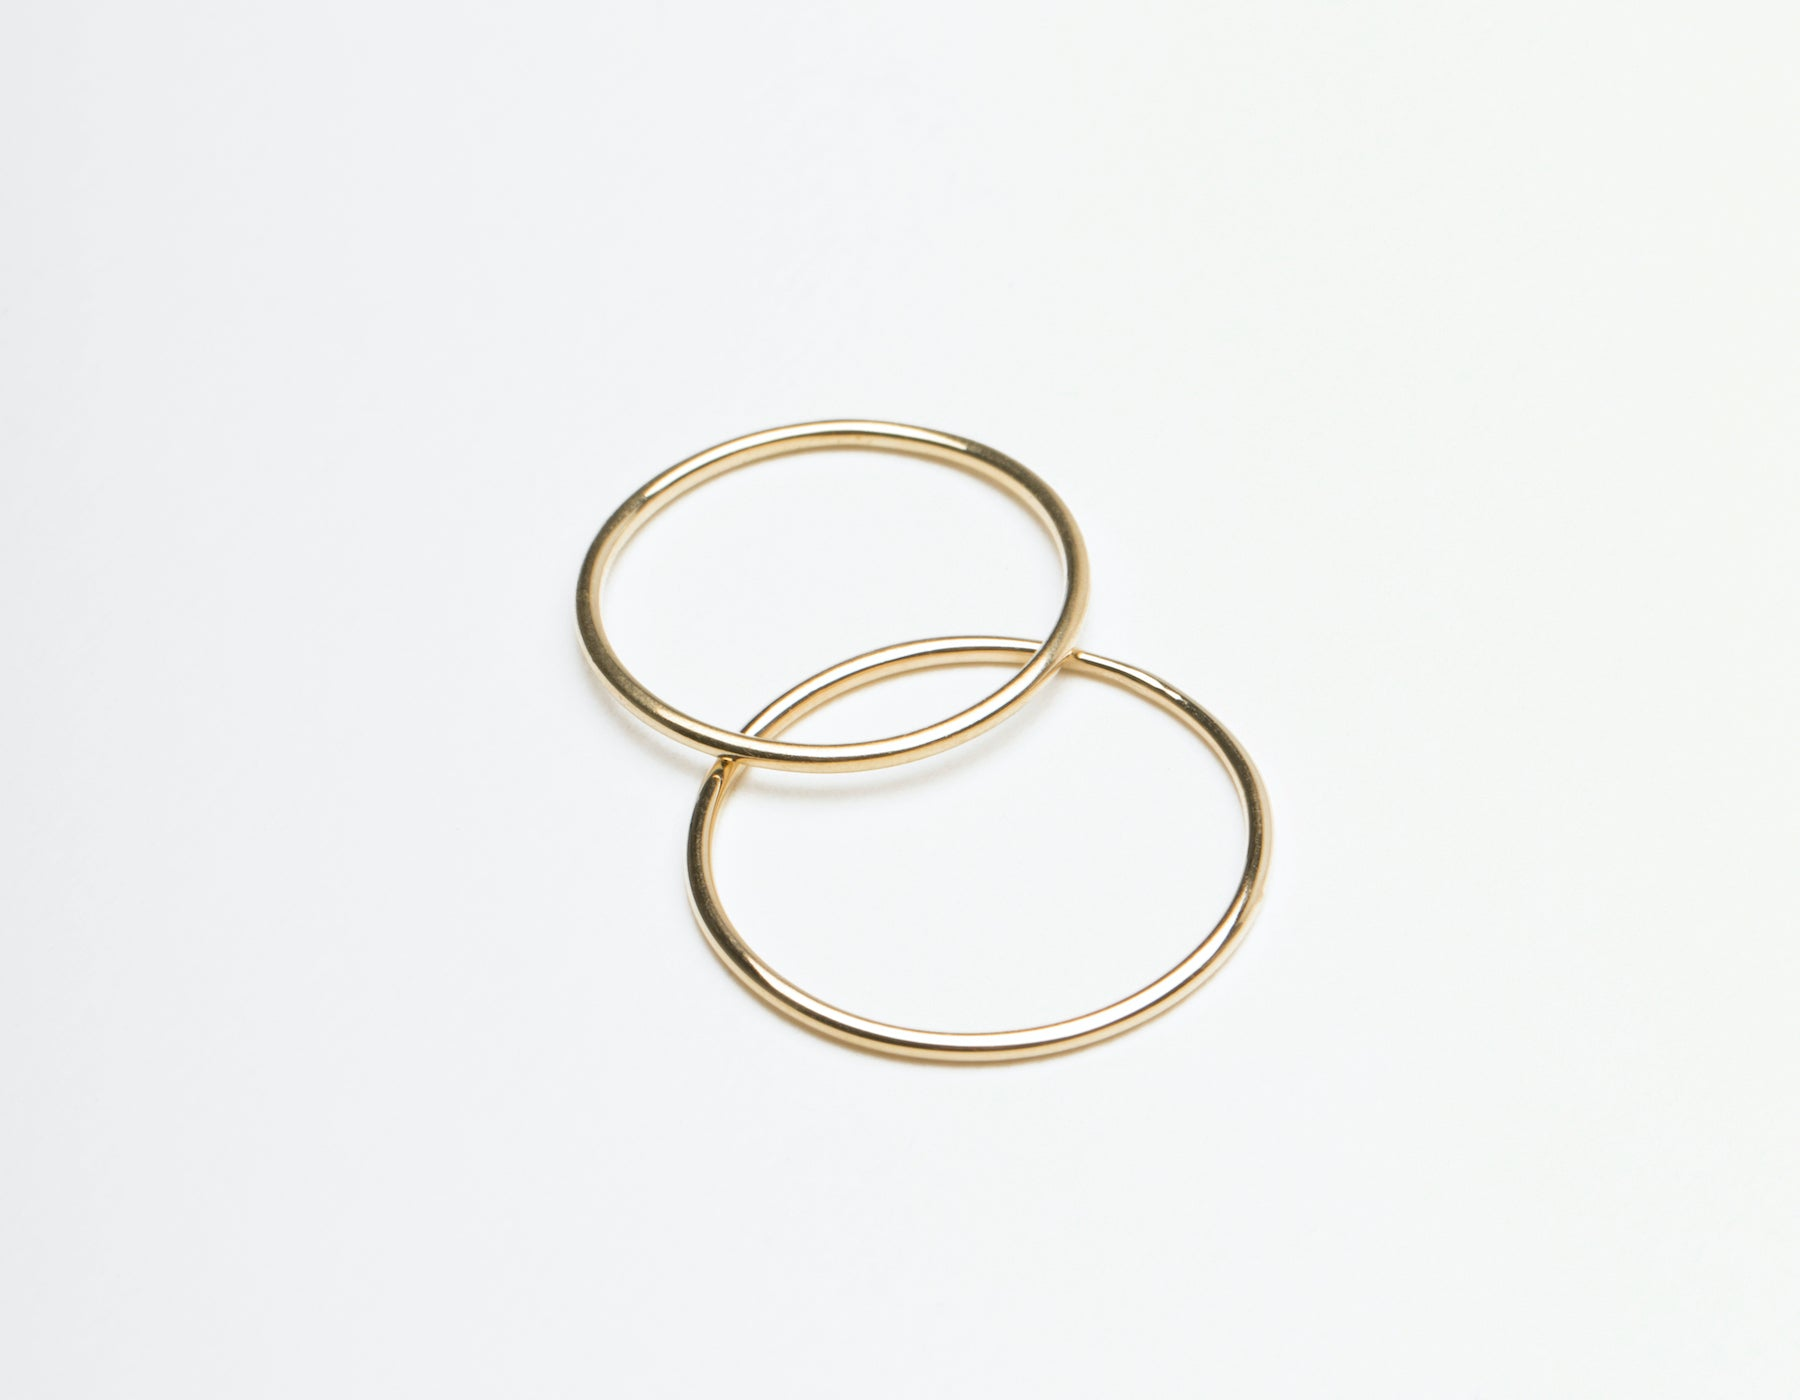 Skinny Stacker Ring 14k solid gold Vrai & Oro plain round thin band, 14K Yellow Gold